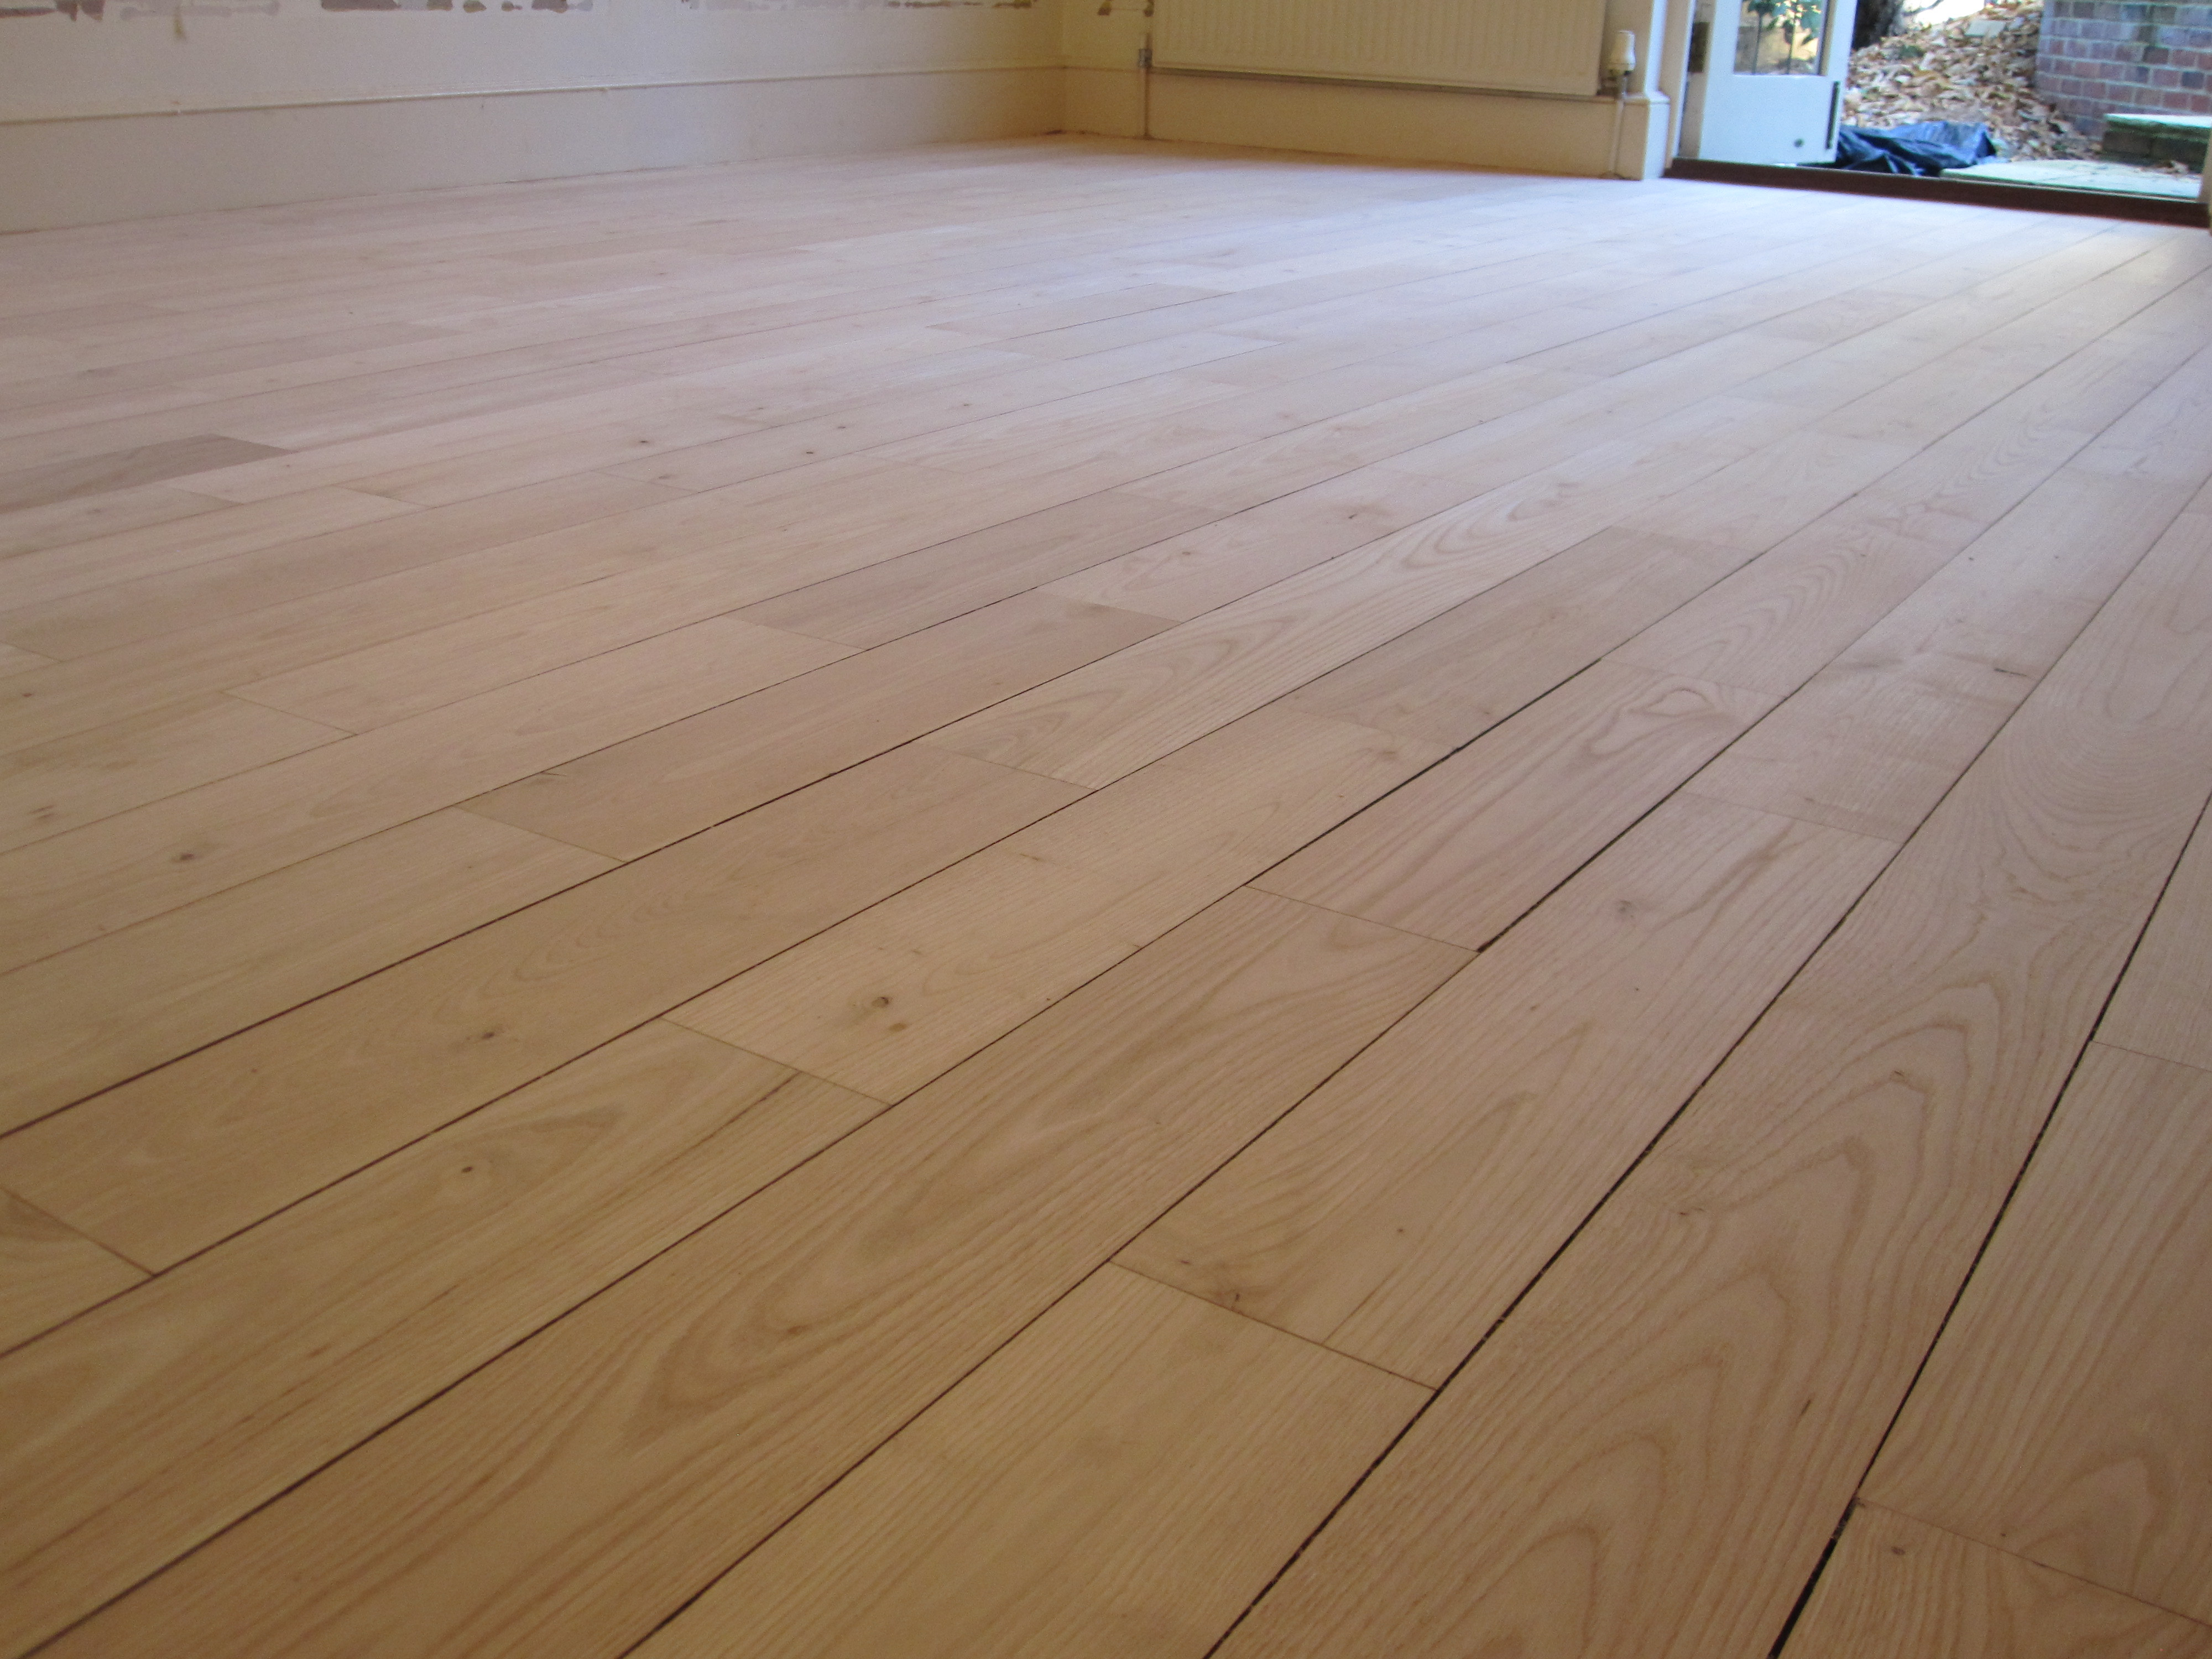 Floor sanding surrey 5 tips you should follow when laying for Laying hardwood floors